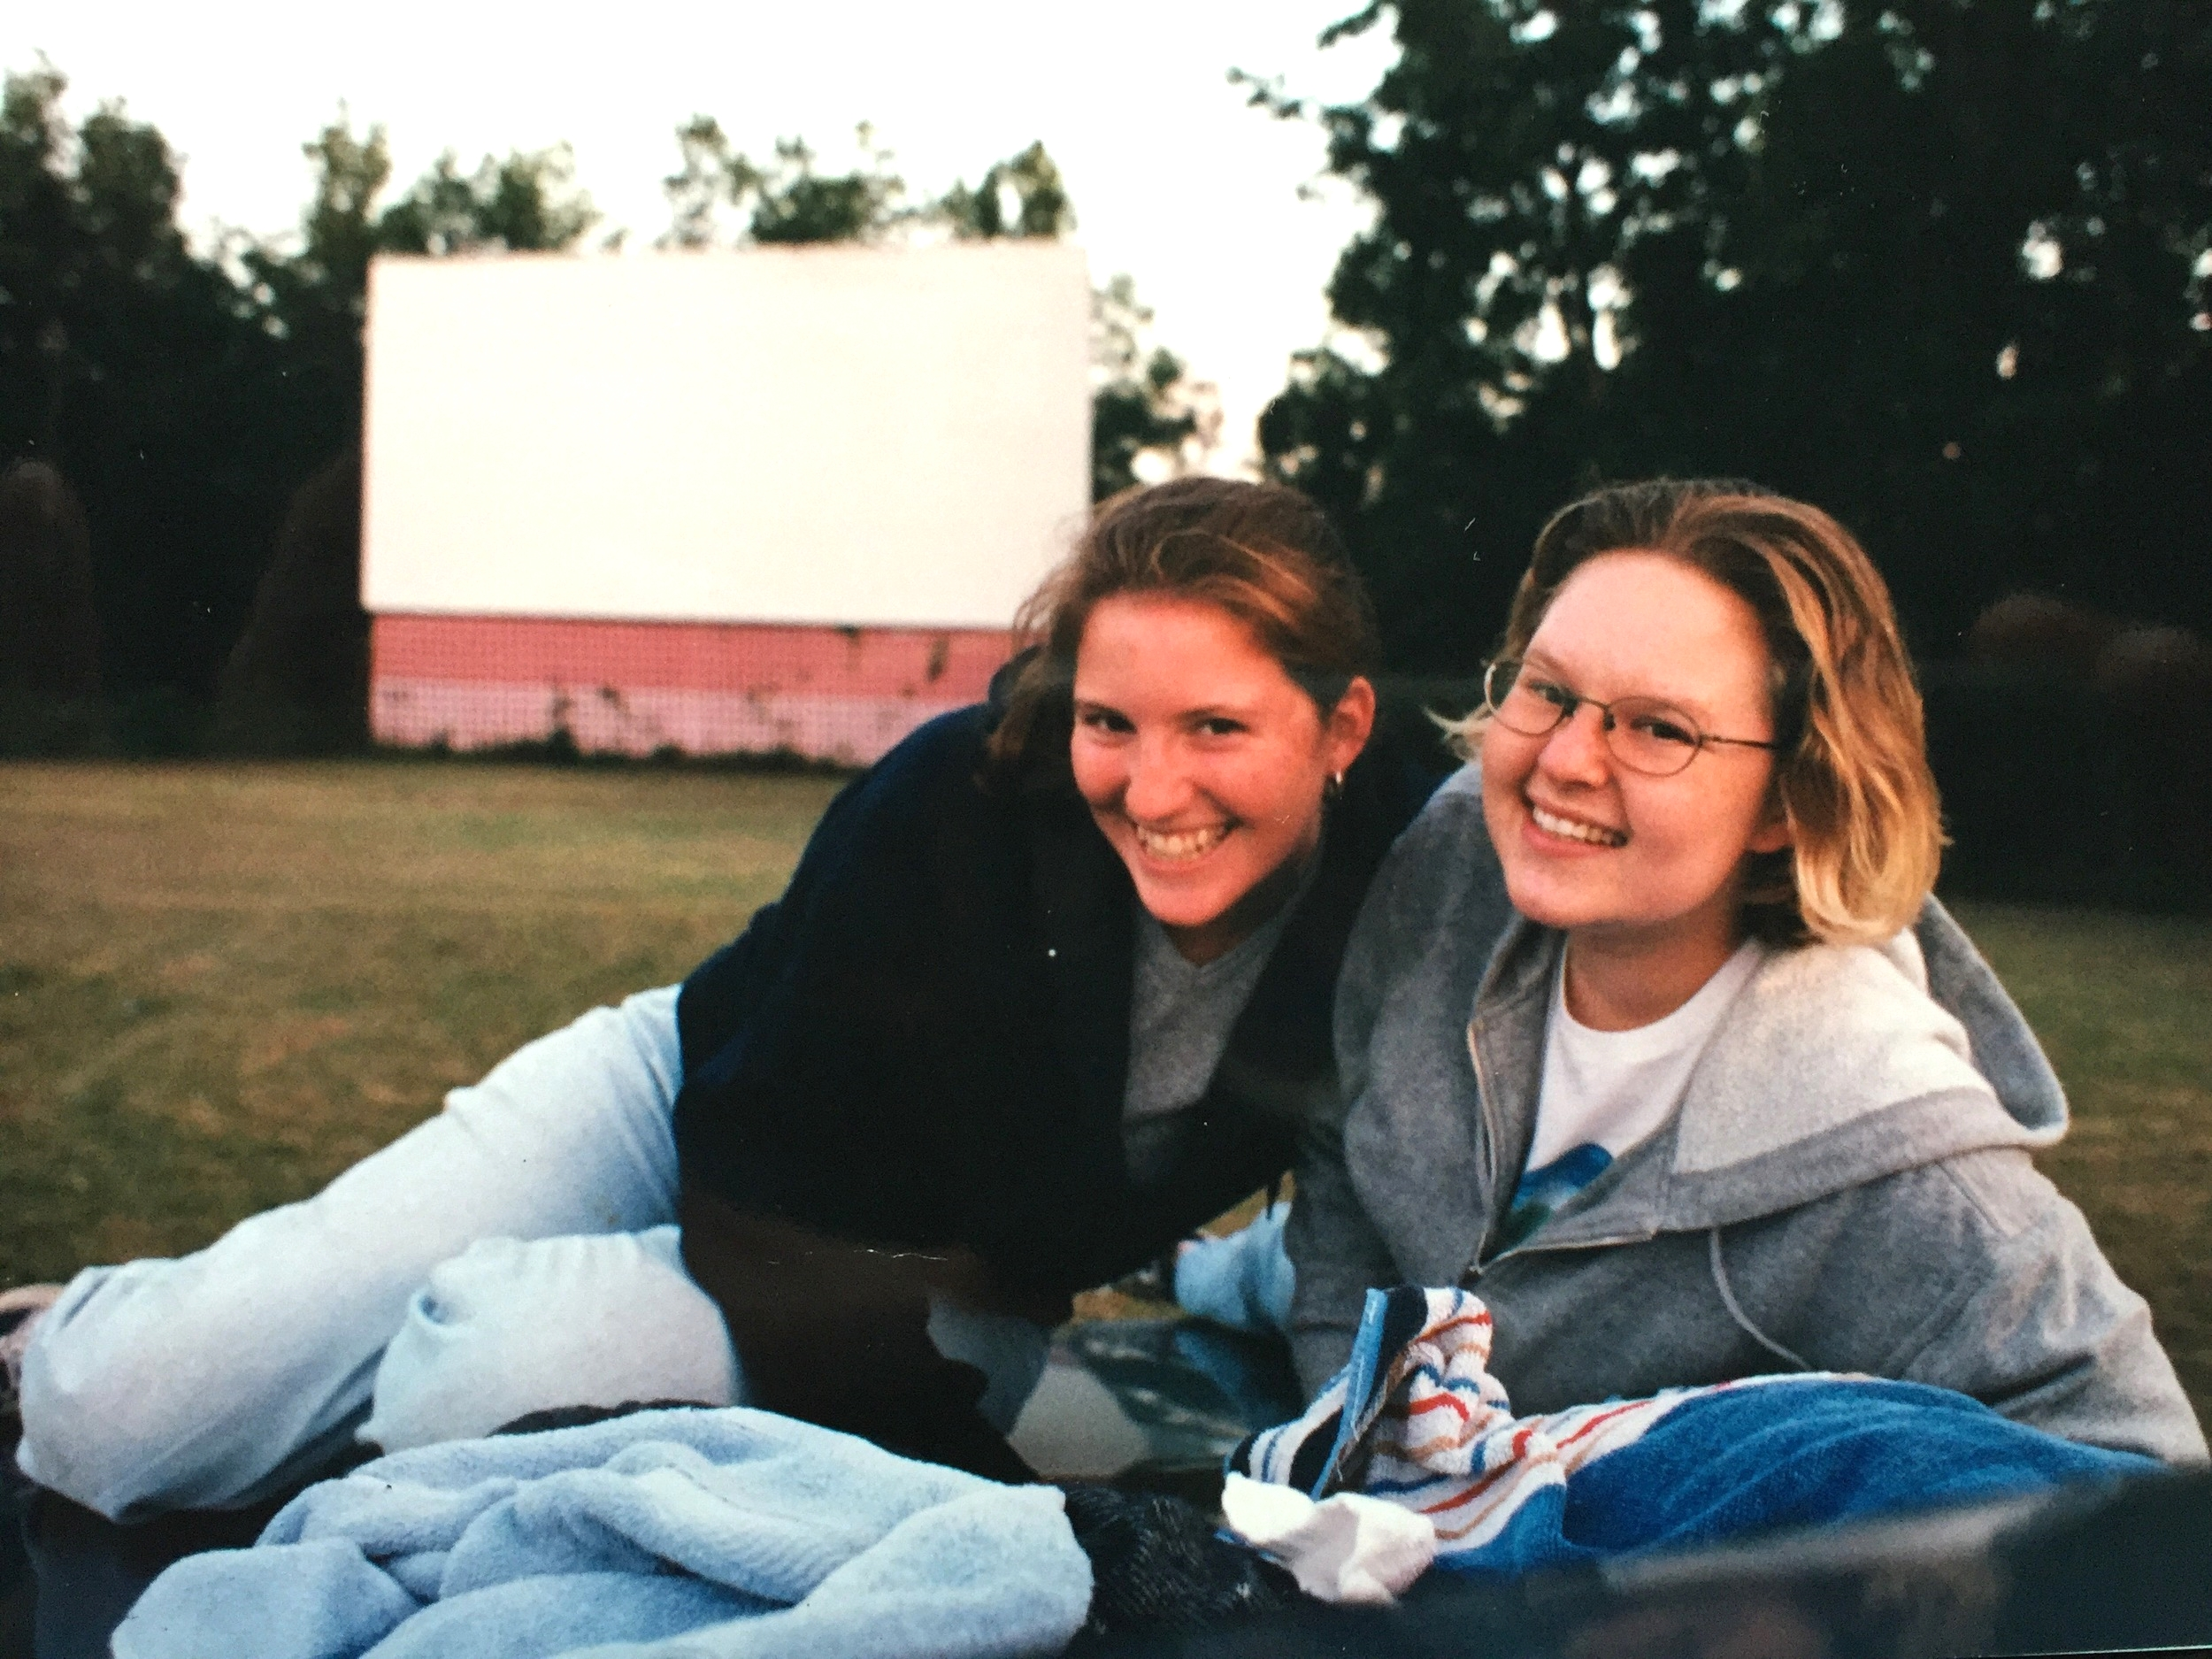 Summer 1999 at the drive in